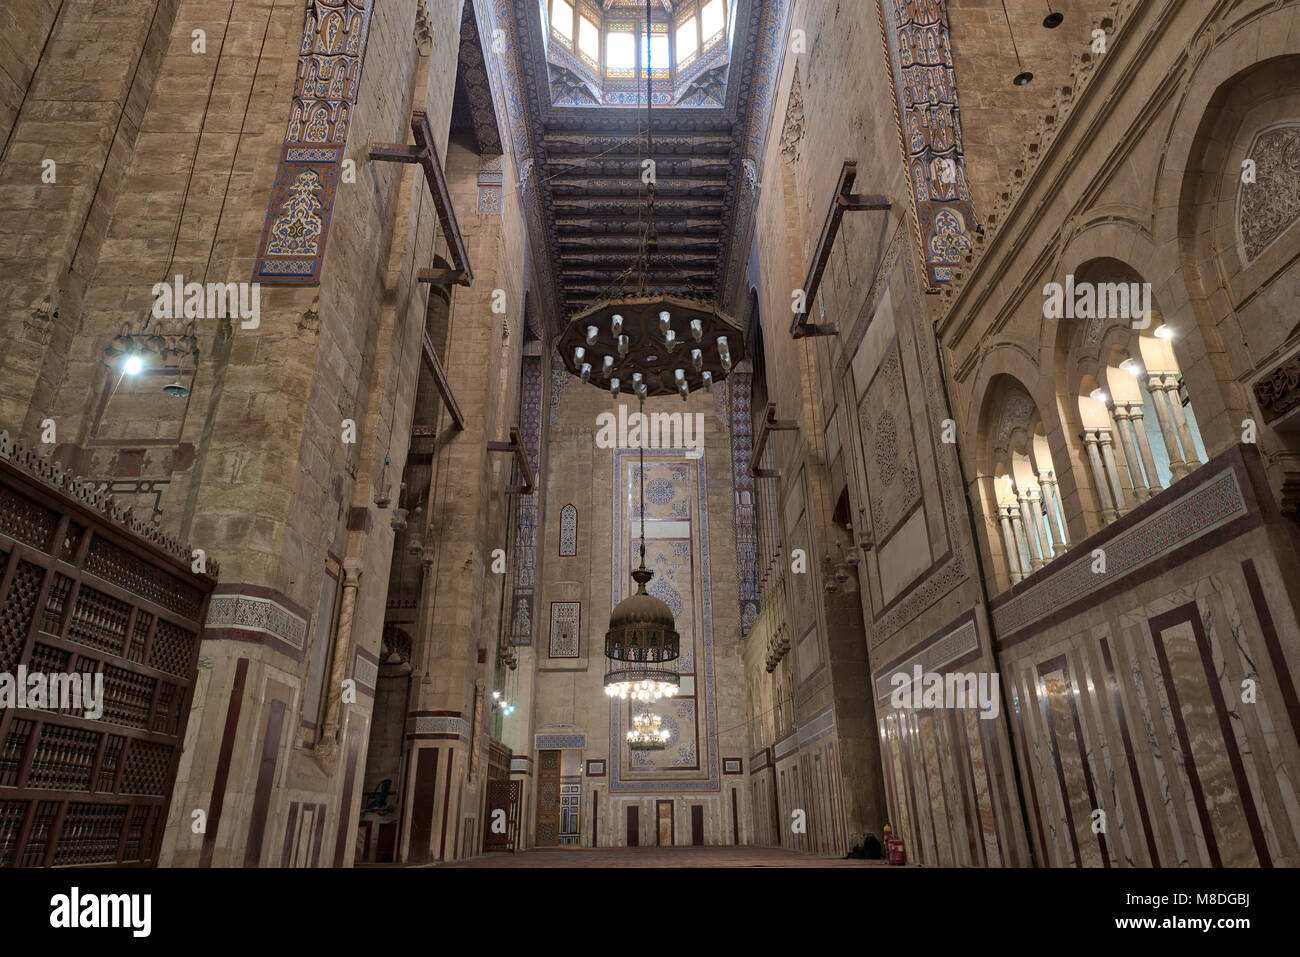 Interior of al Refai mosque with old decorated bricks stone wall, colored marble decorations, wooden ornate ceiling, - Stock Image